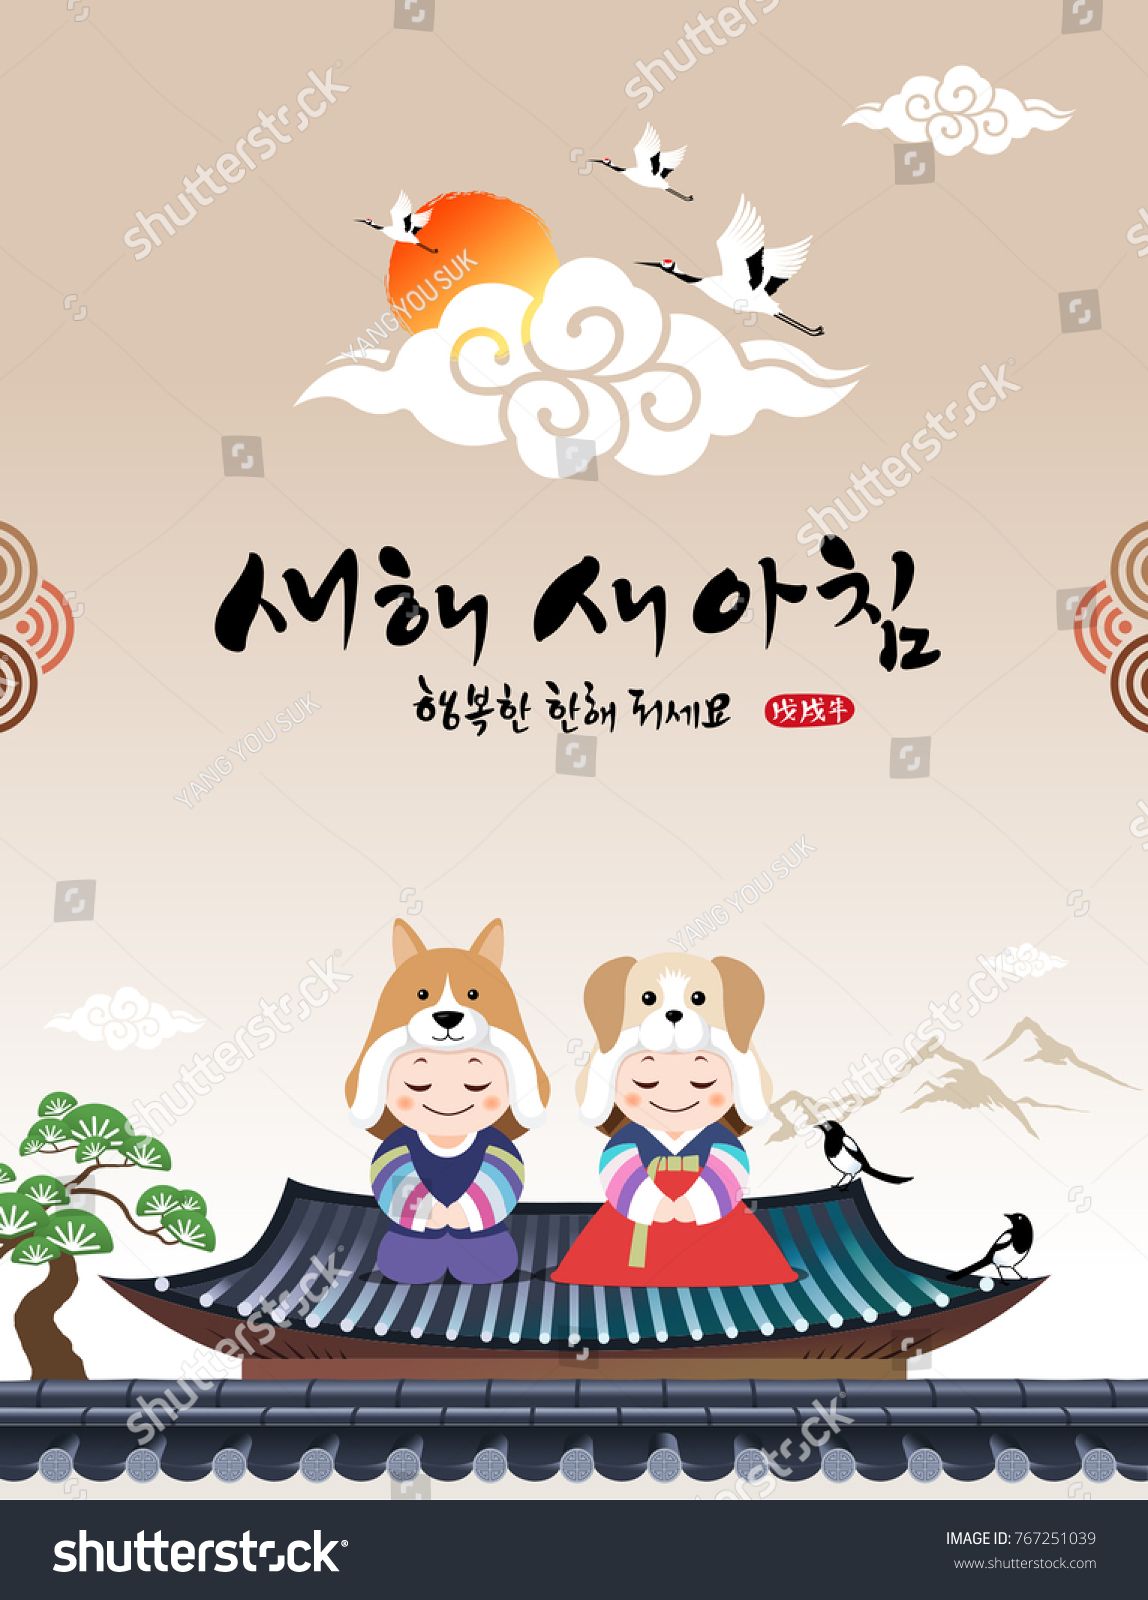 Happy new year translation korean text stock vector 767251039 happy new year translation of korean text happy new year calligraphy and kristyandbryce Choice Image